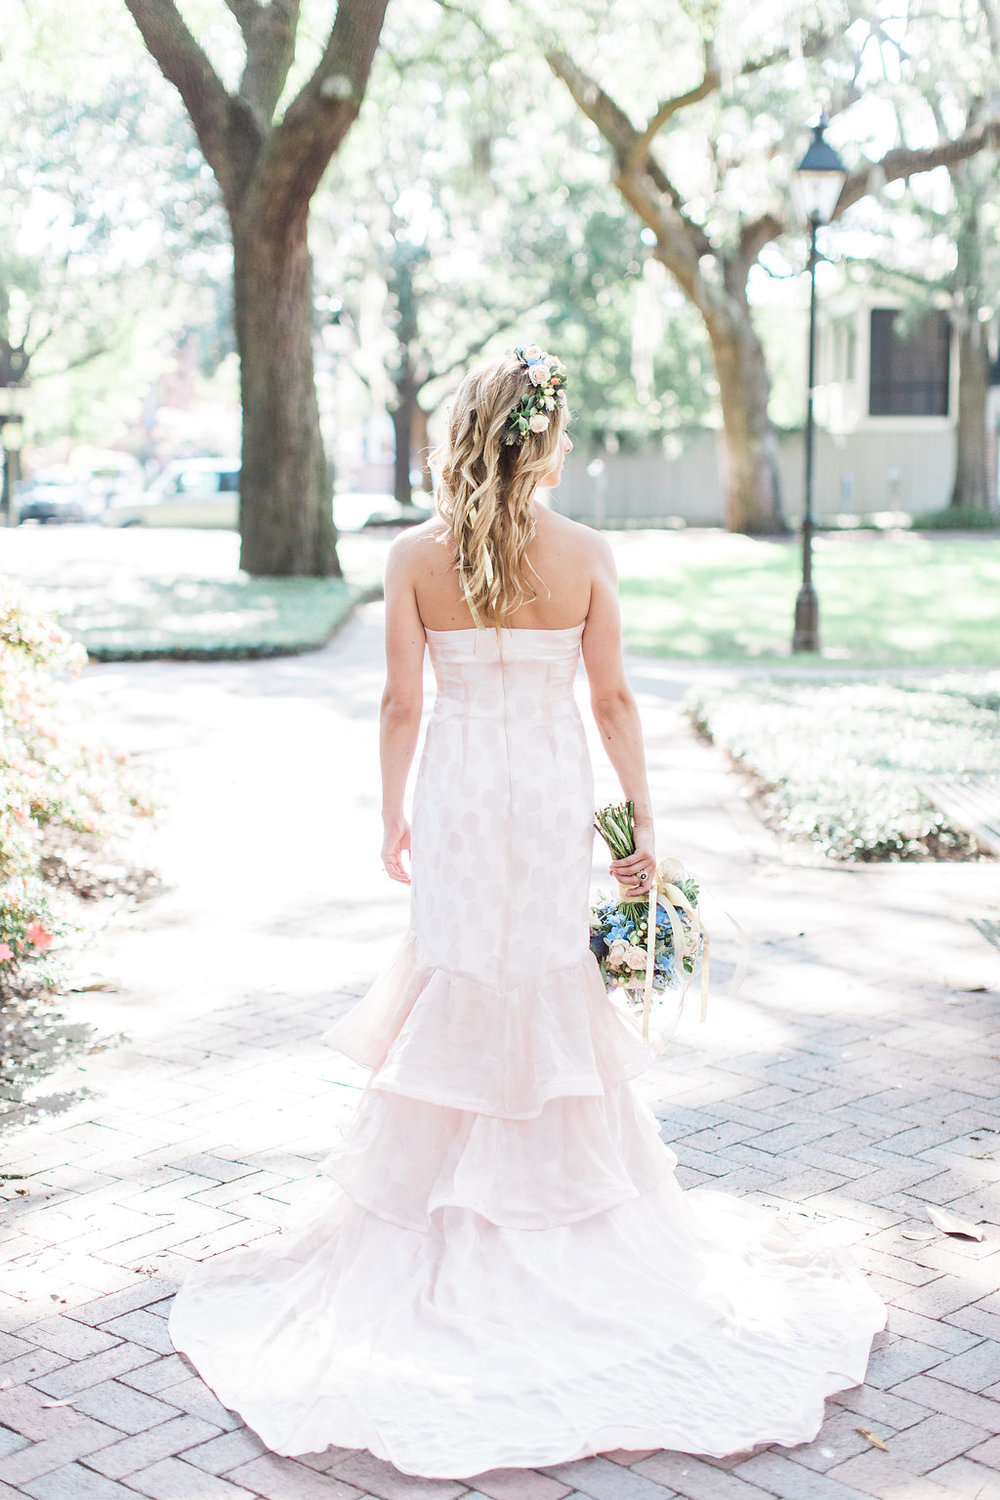 eve-pat-apt-b-photography-Jacklynn-bridal-blush-wedding-dress-polka-dot-wedding-dress-ivory-and-beau-bridal-boutique-savannah-wedding-harry-potter-wedding-savannah-bridal-boutique-savannah-wedding-planner-urban-poppy-florist-soho-south-cafe-wedding-25.JPG